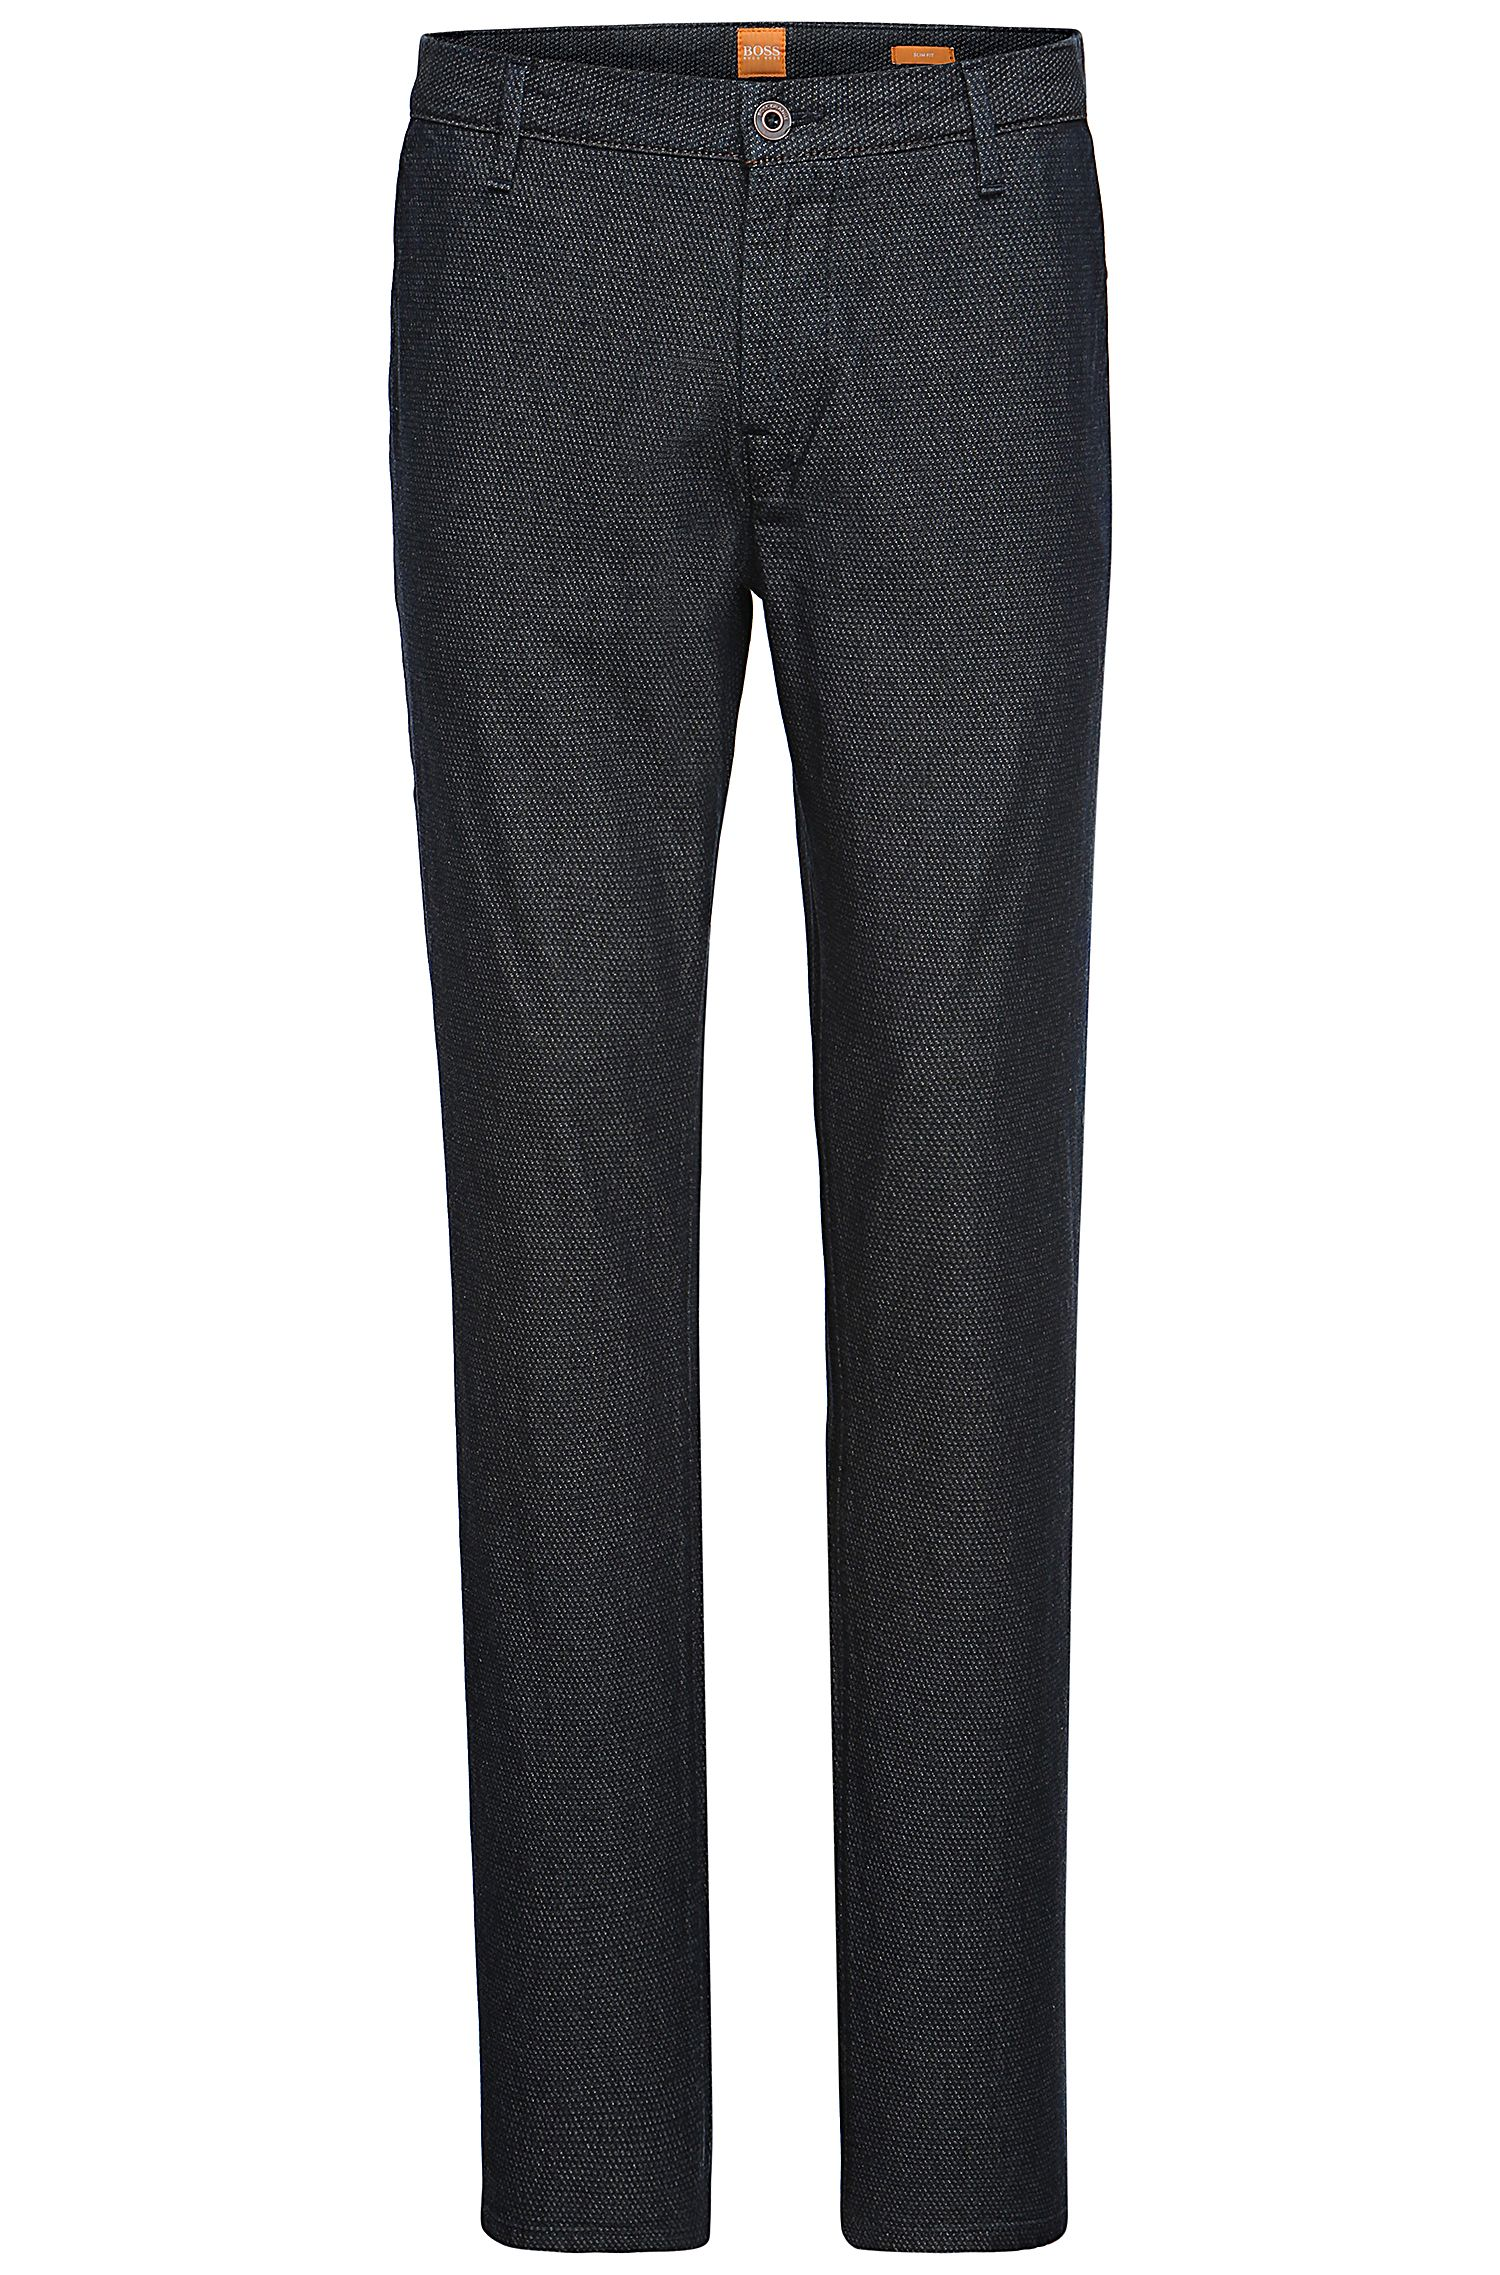 'Sairy-W' | Slim Fit, Stretch Cotton Textured Chinos